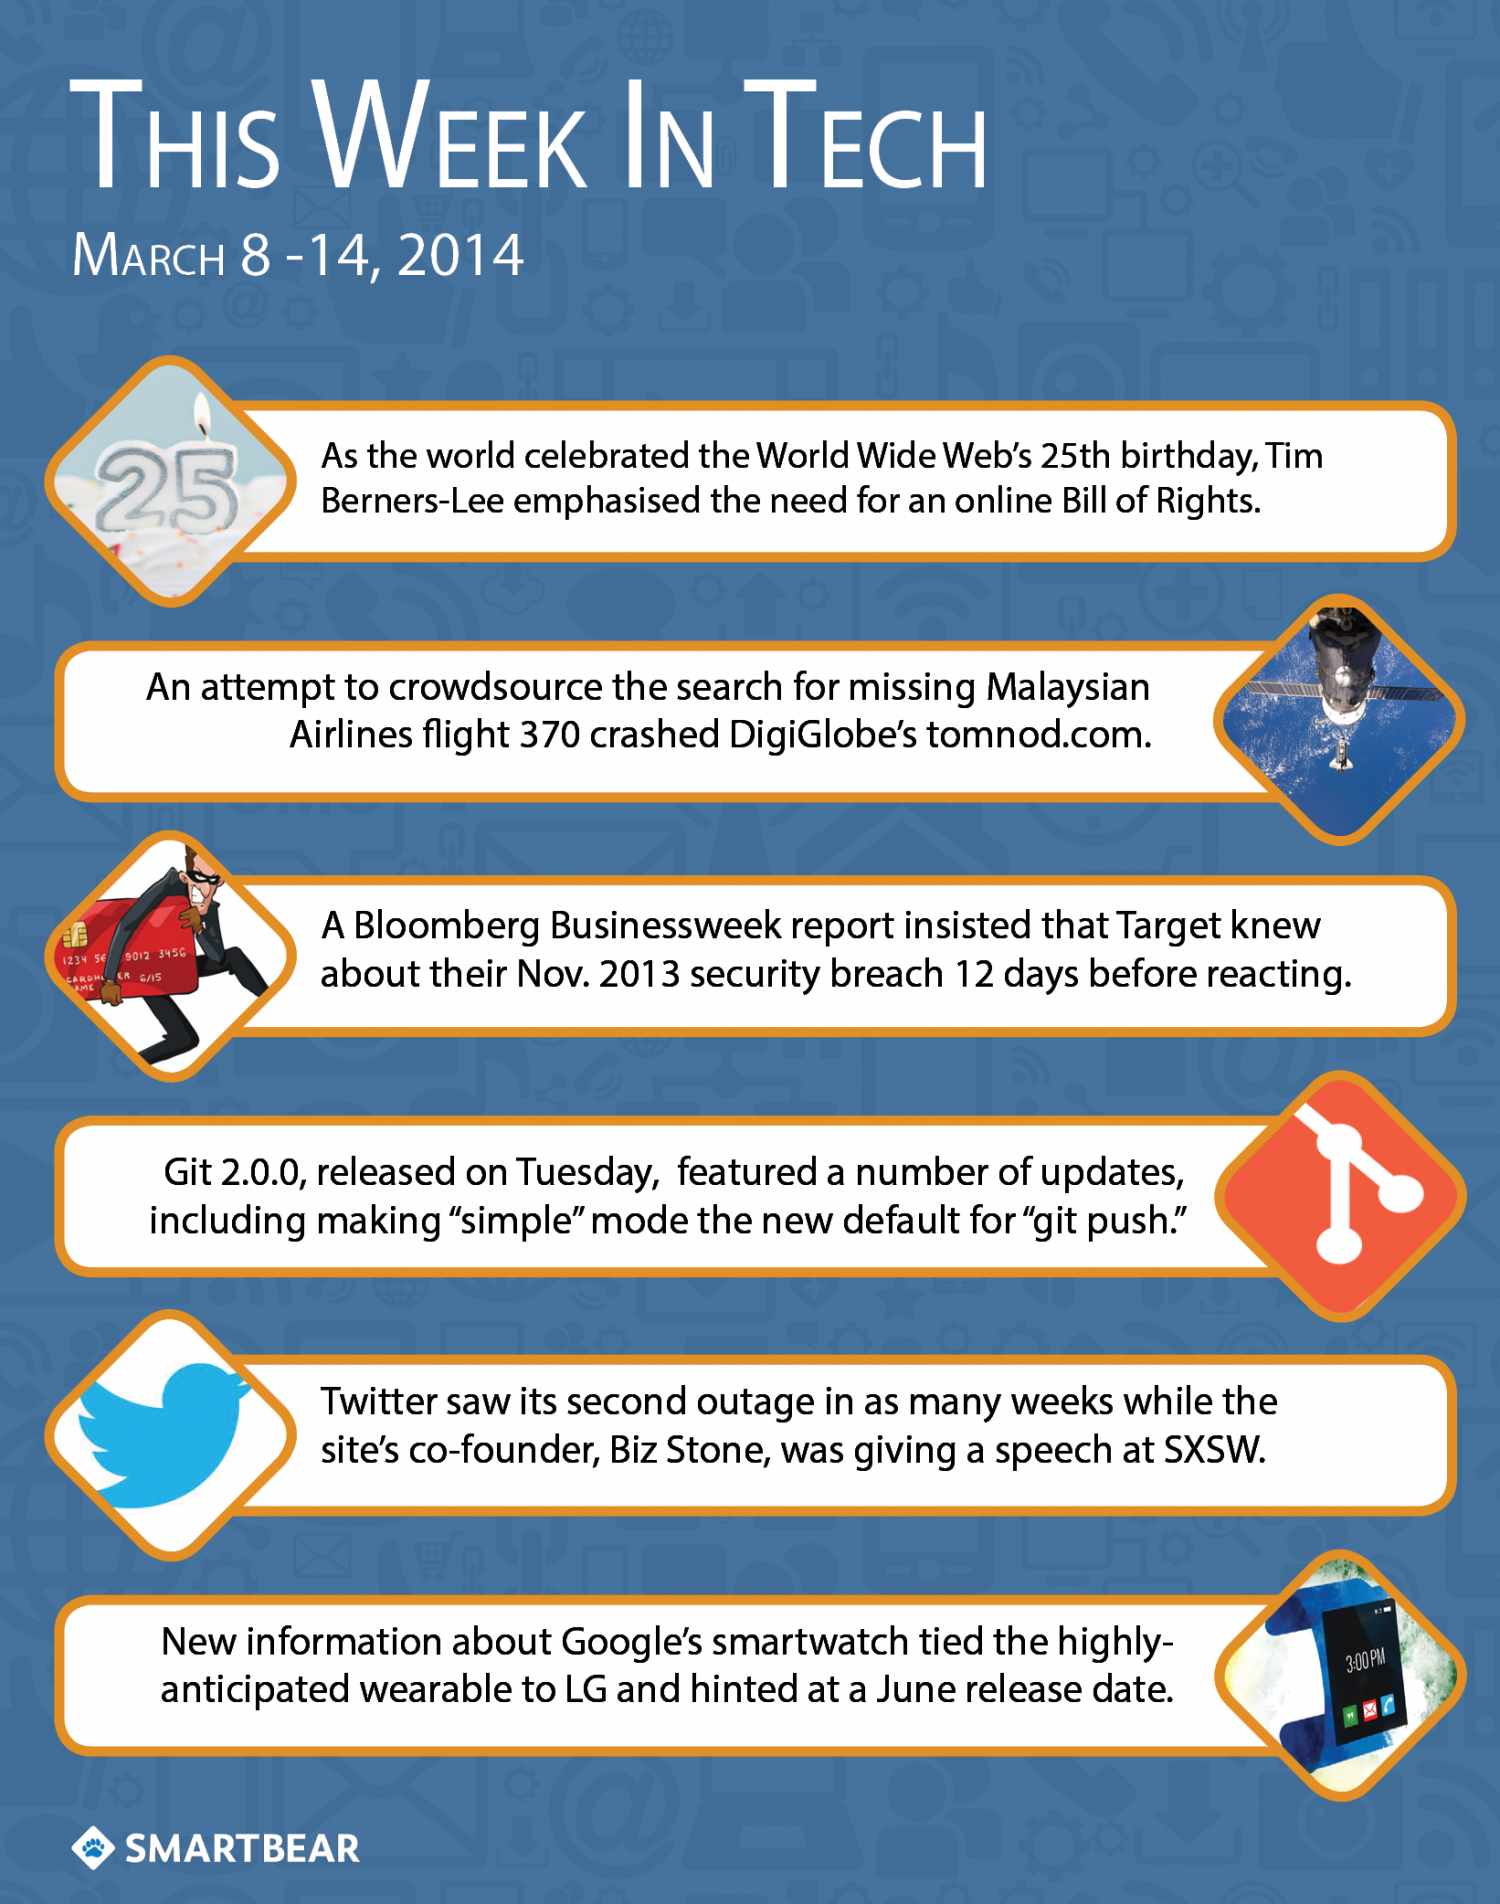 This Week in Tech (March 8-14) Infographic